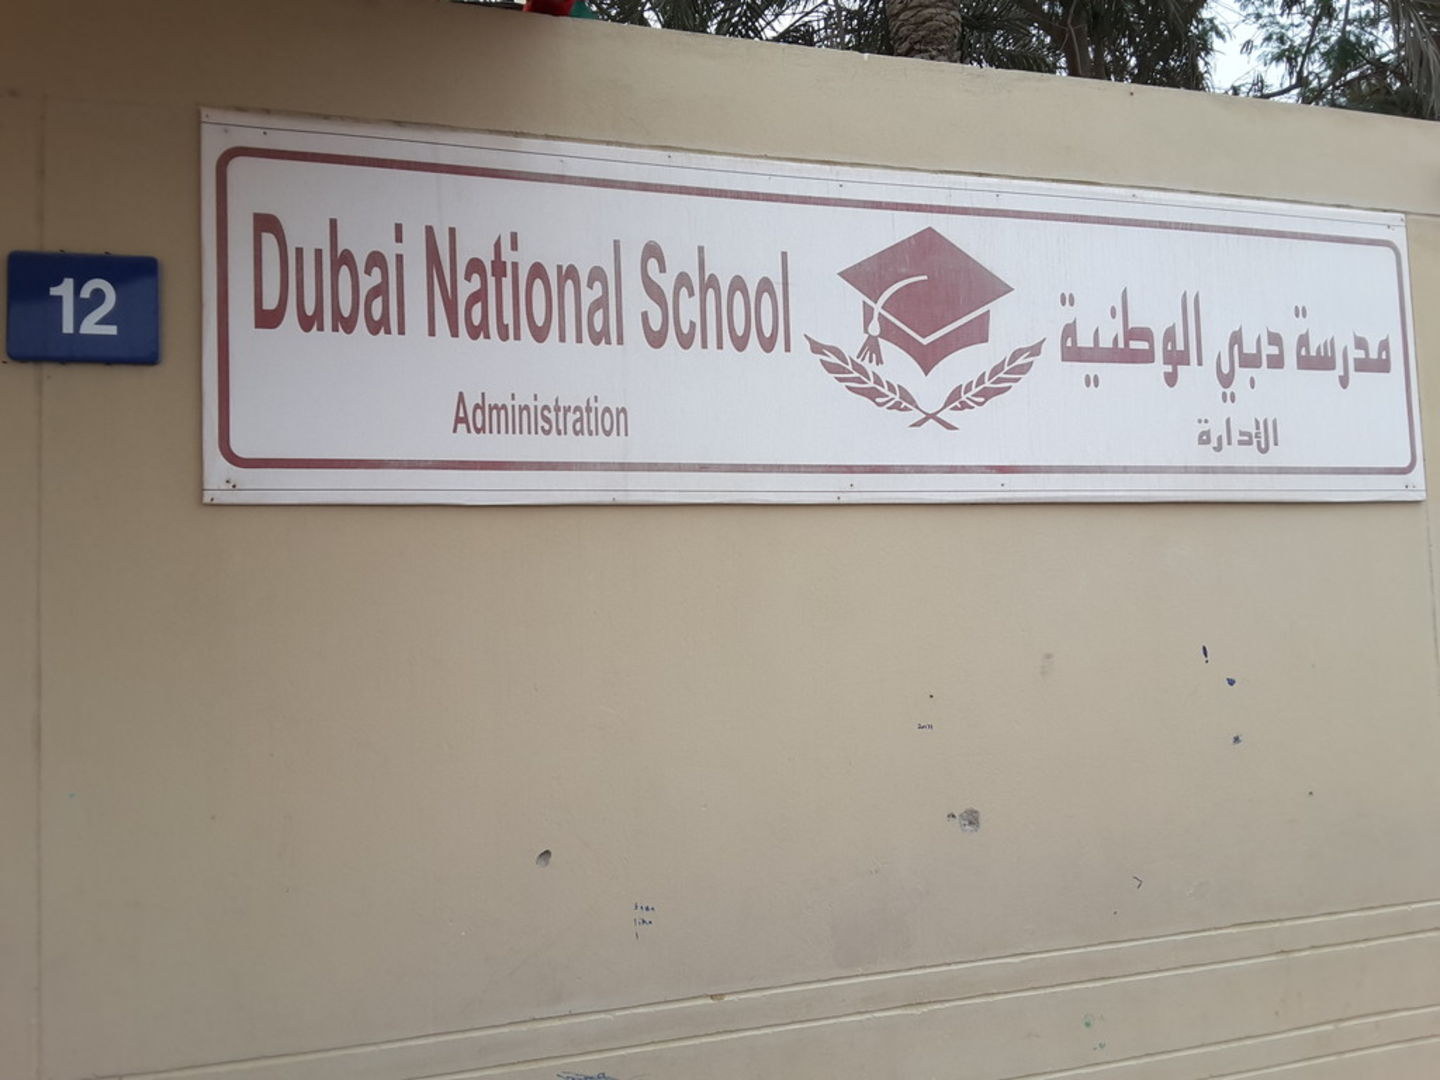 Walif-business-dubai-national-school-1